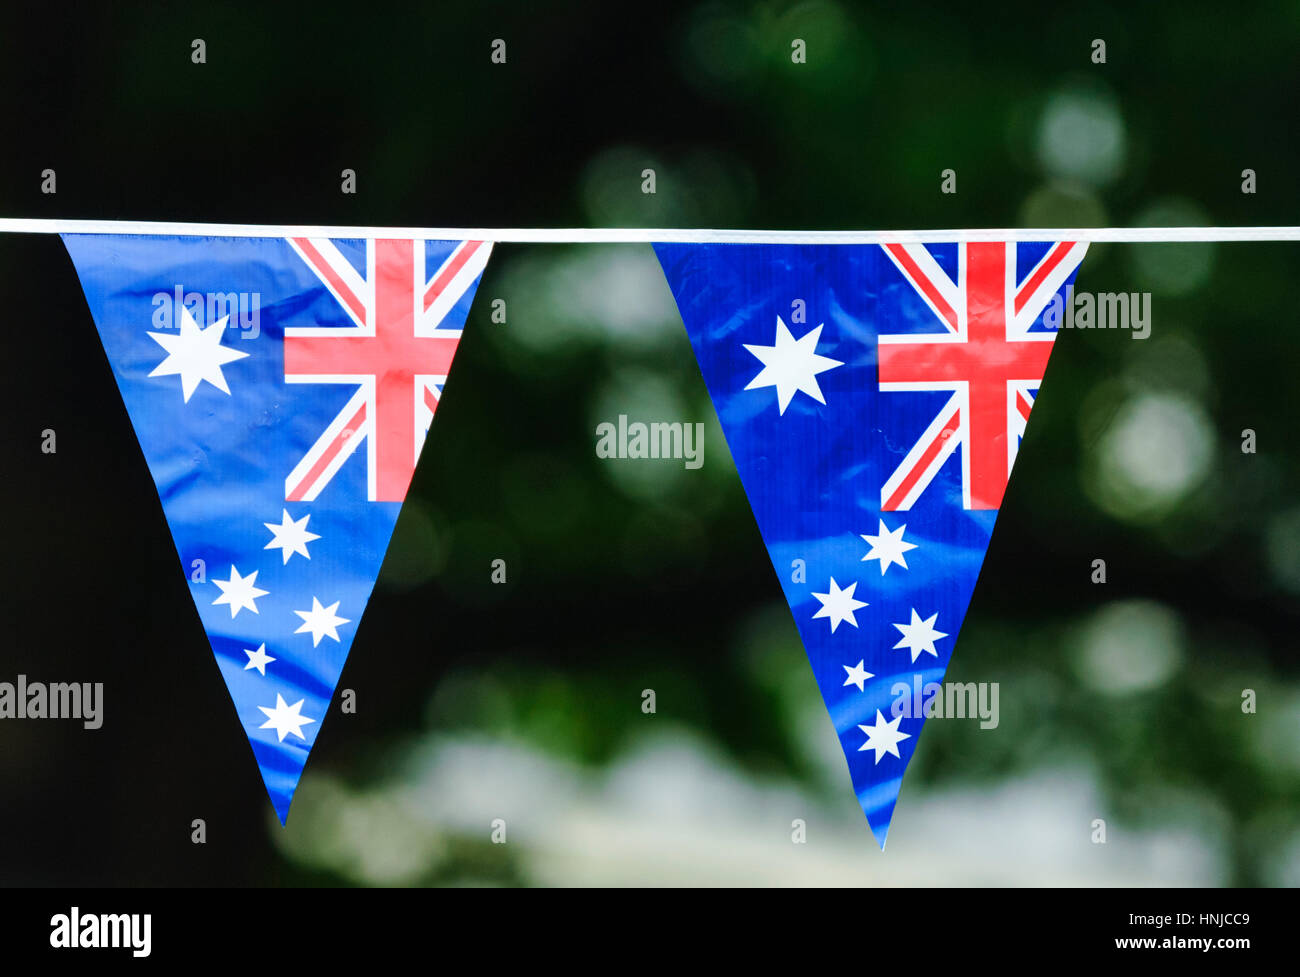 buntings-of-the-australian-flag-displaye